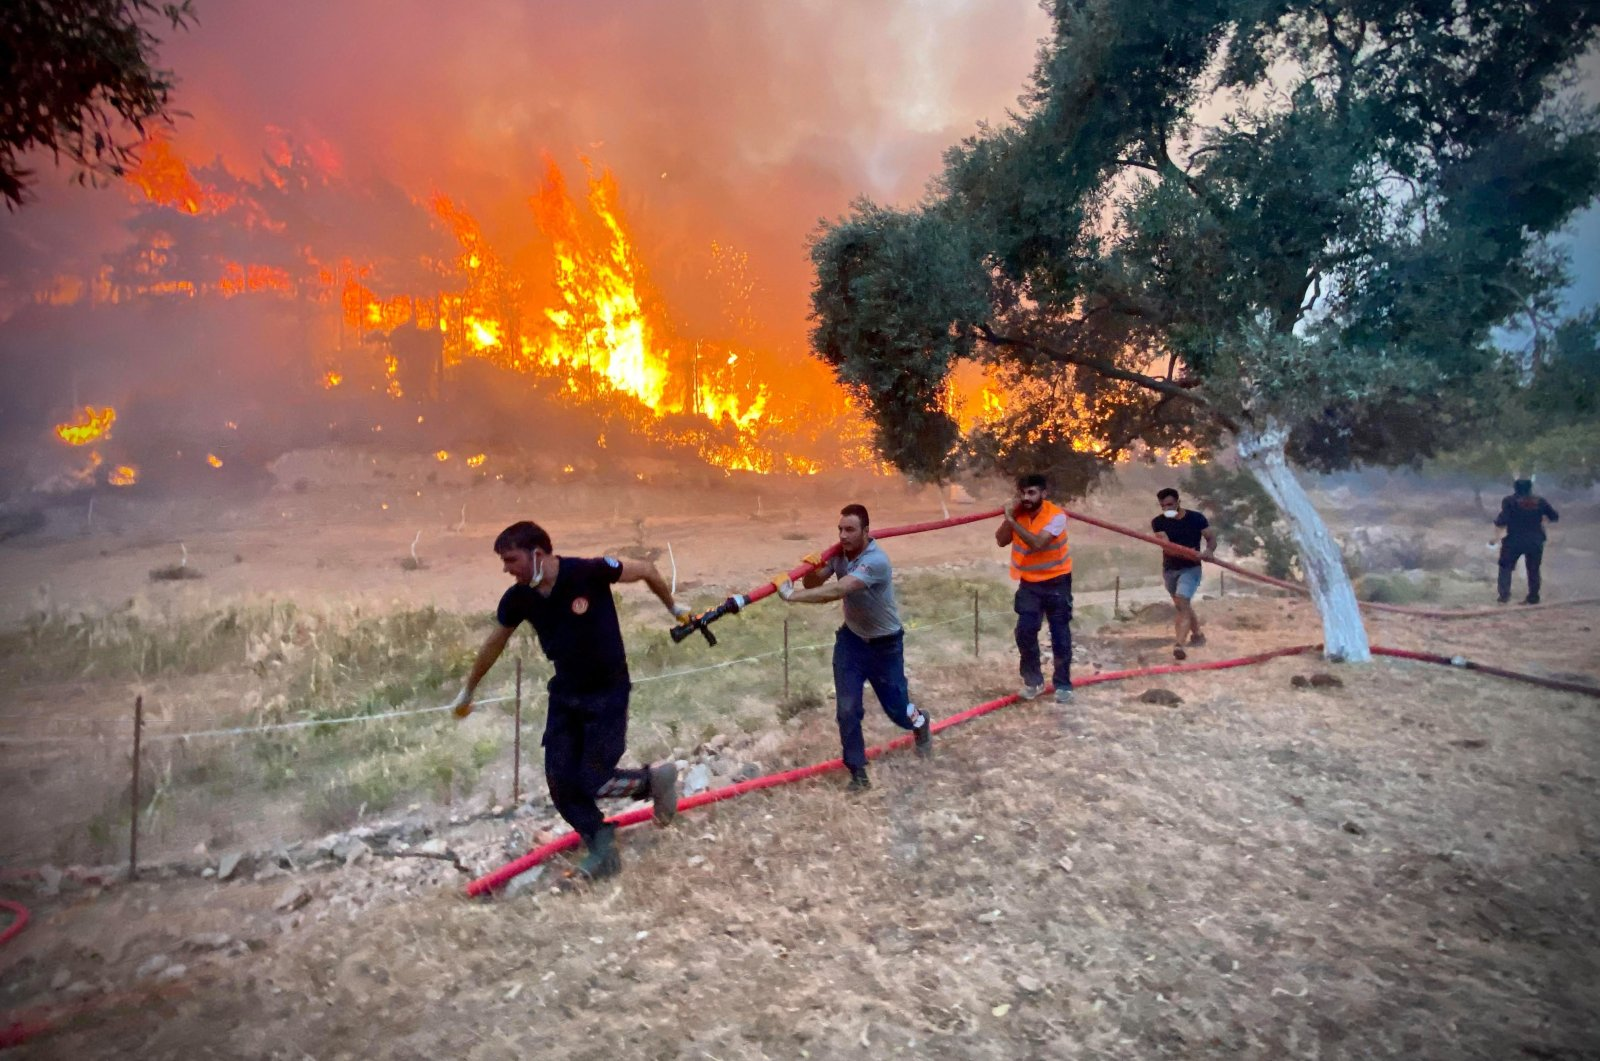 Firemen and local volunteers carry hosepipes as they fight to extinguish a wildfire in Ören, in the holiday region of Muğla, southwestern Turkey, Aug. 6, 2021. (AFP Photo)